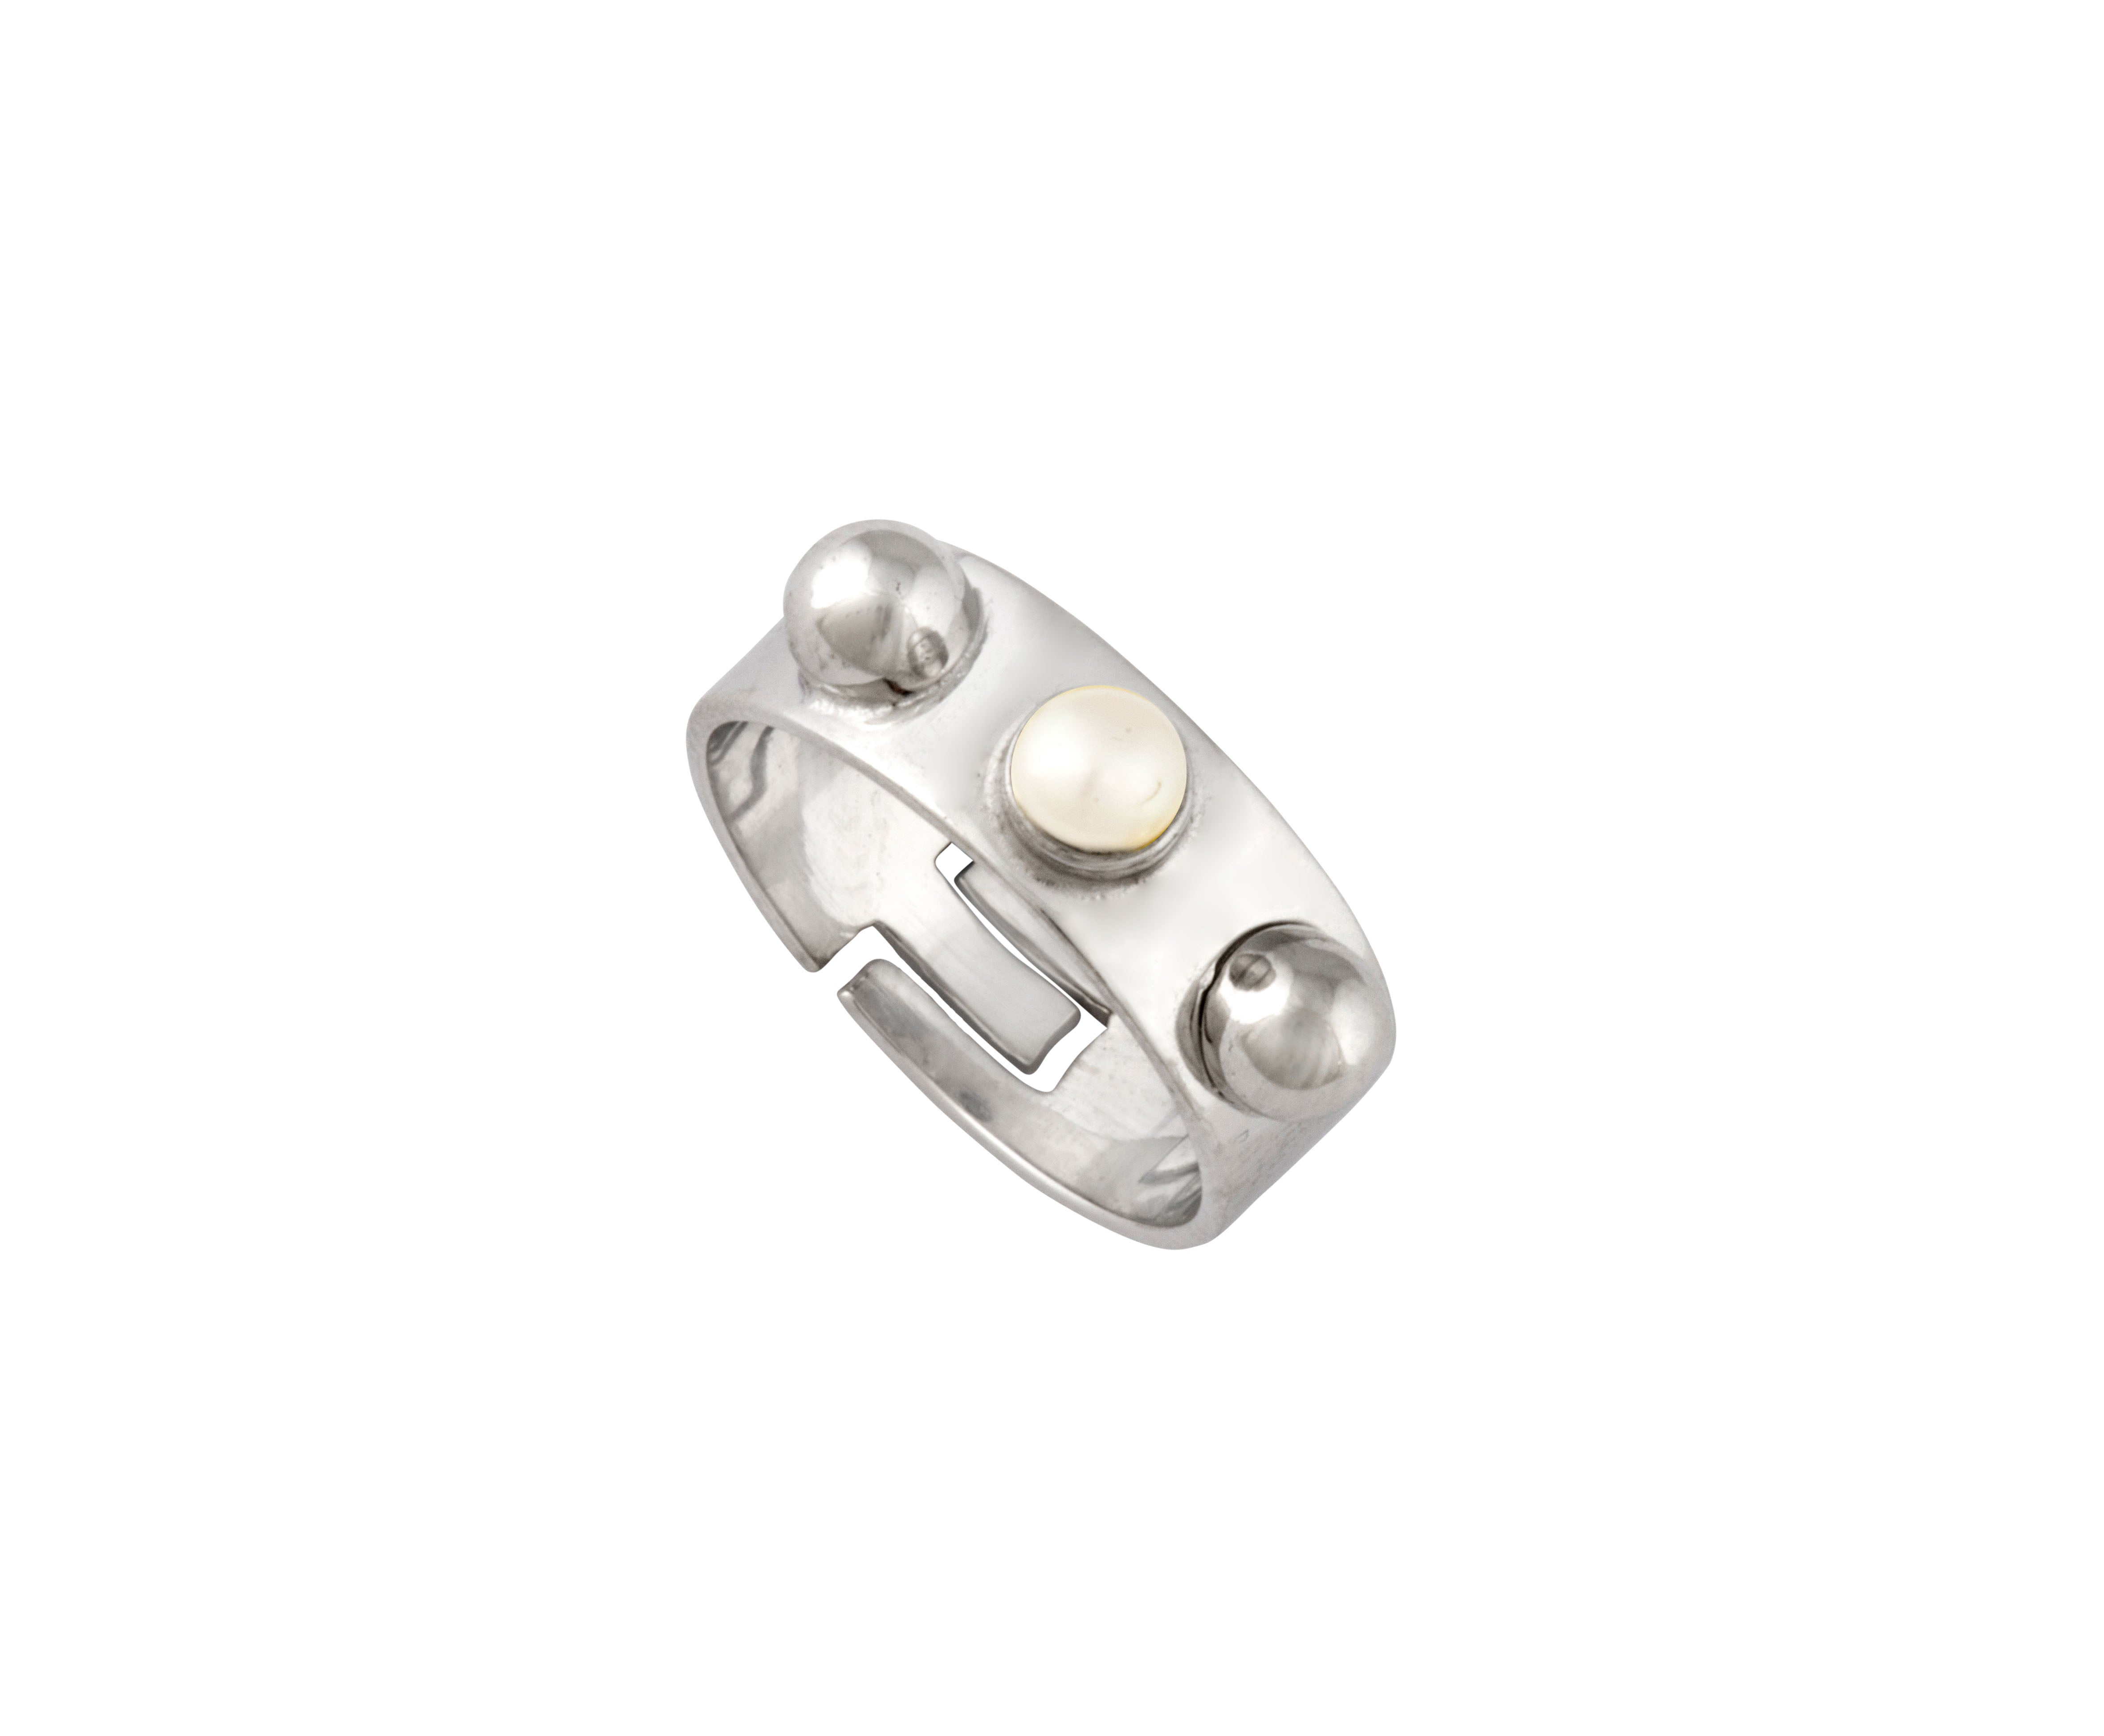 Triple Cyto Ring - Silver Polished